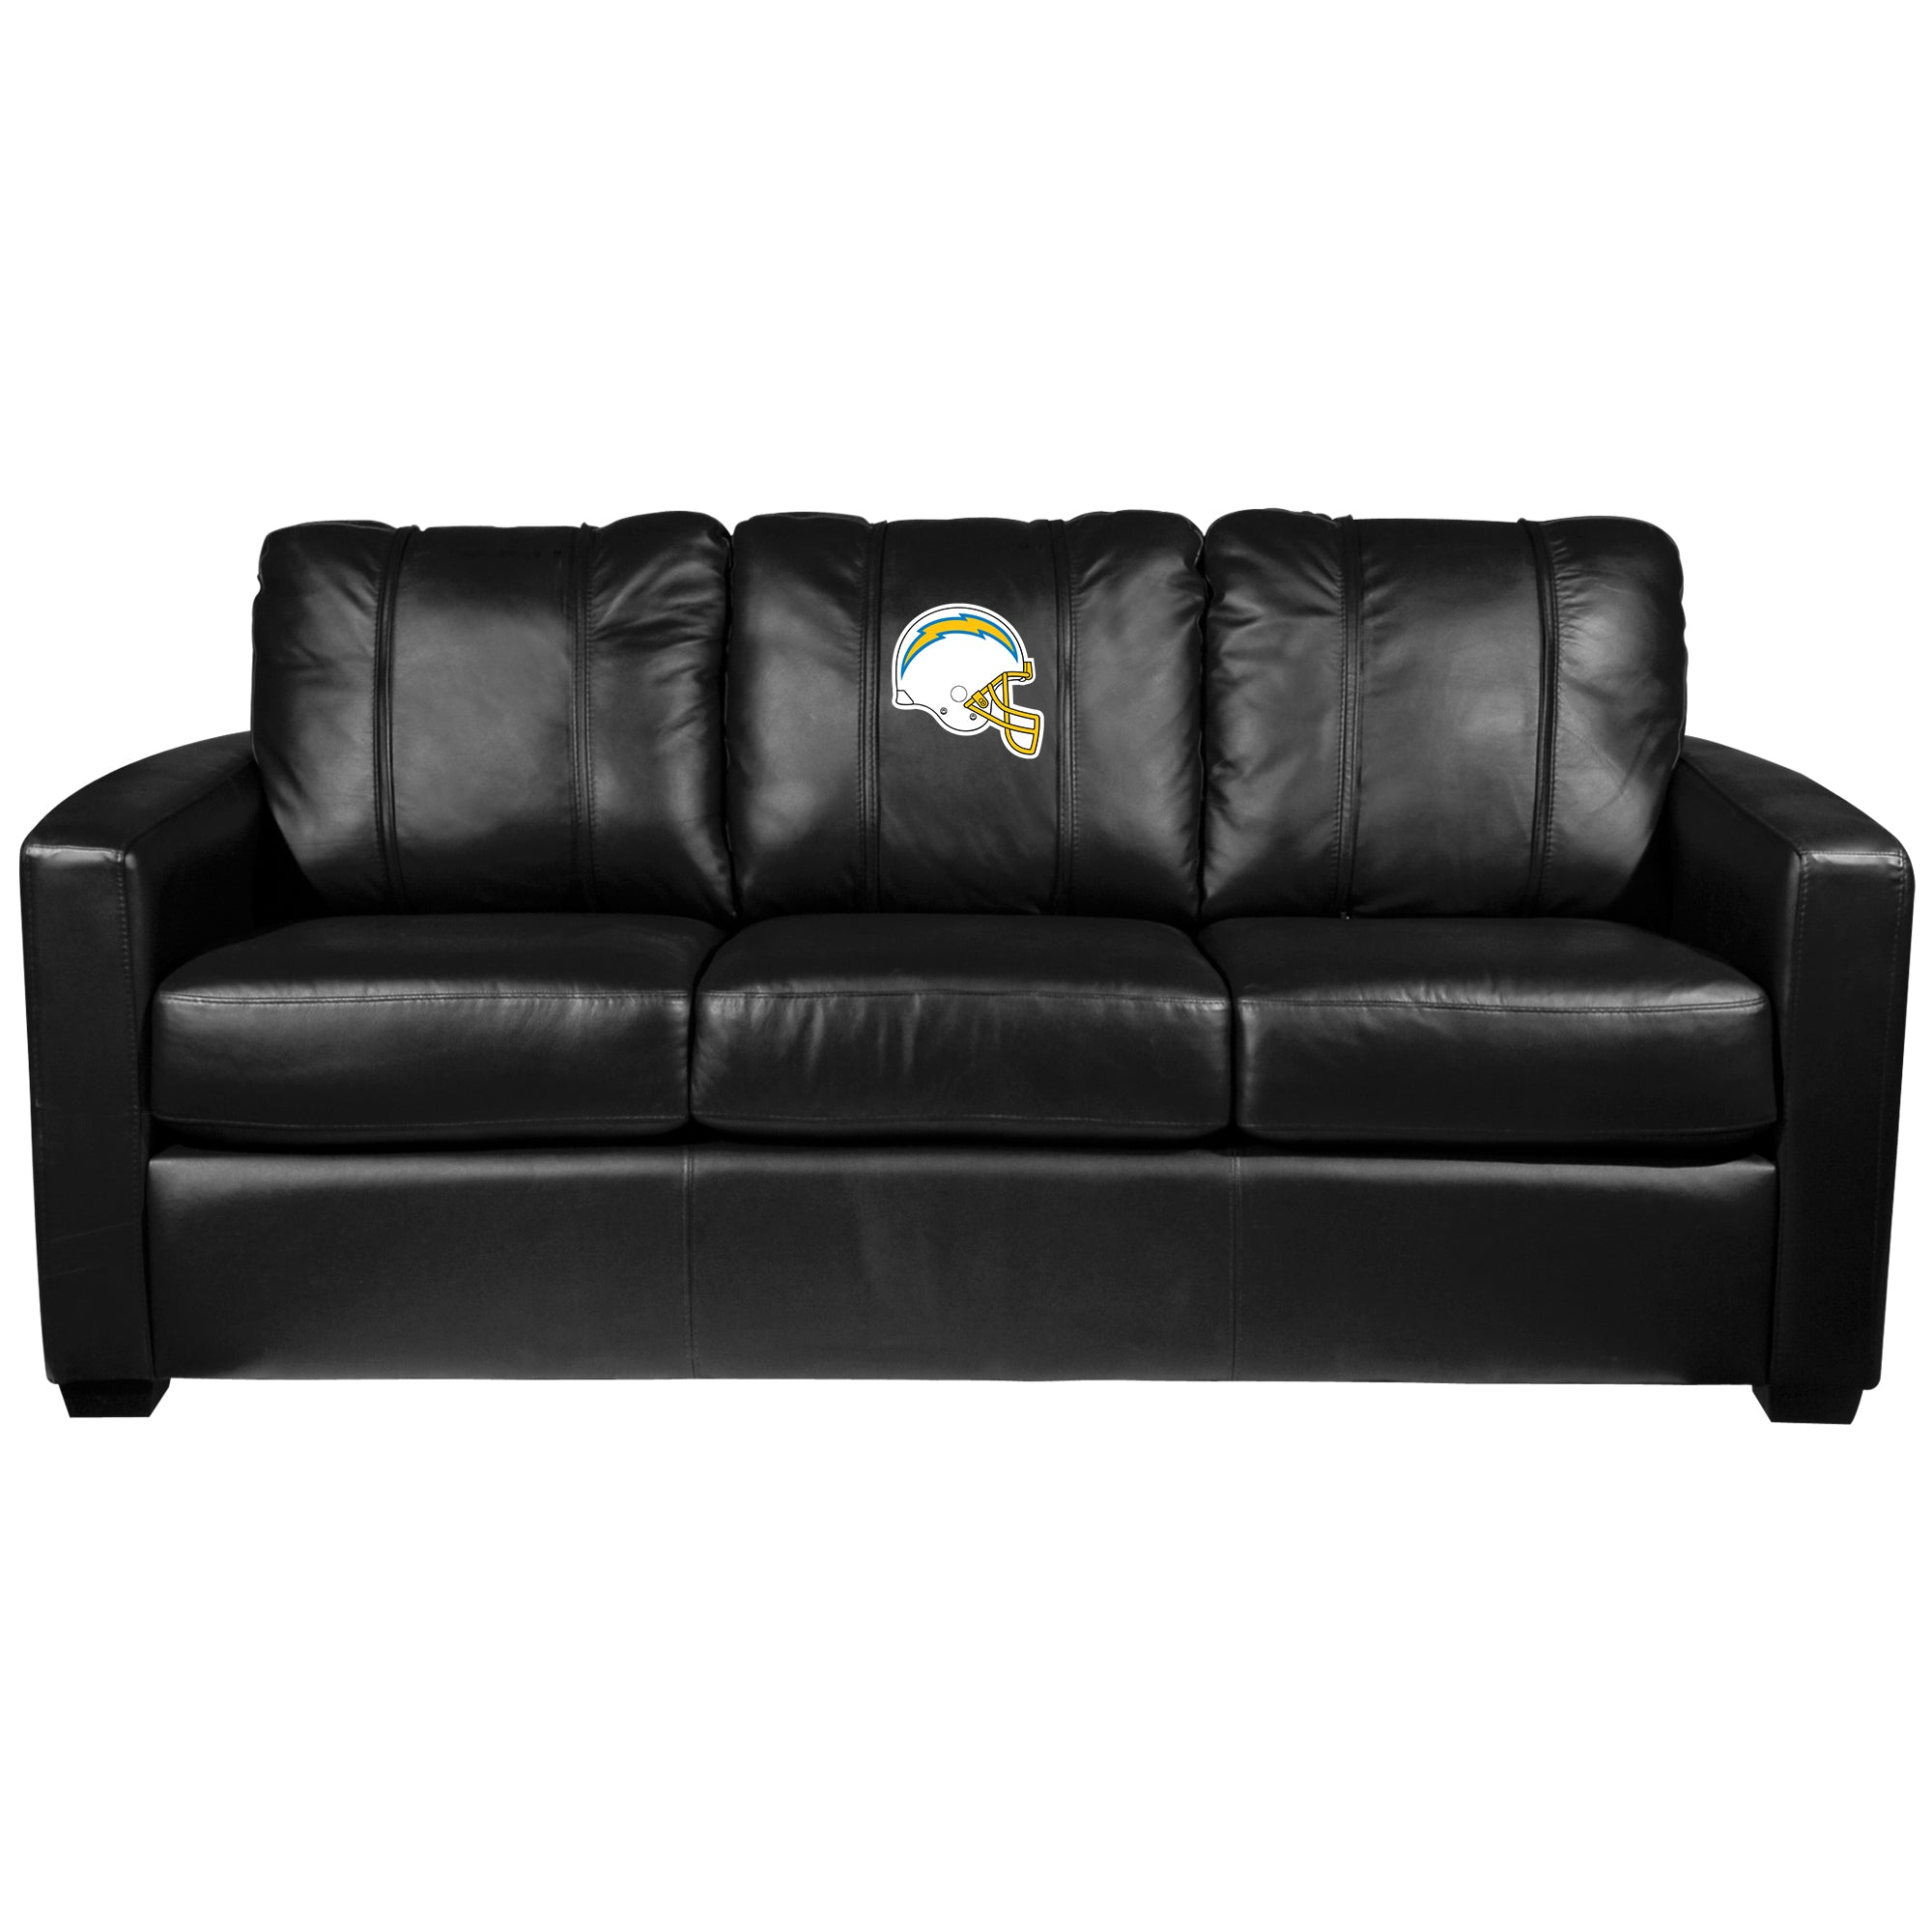 Silver Sofa with  Los Angeles Chargers Helmet Logo